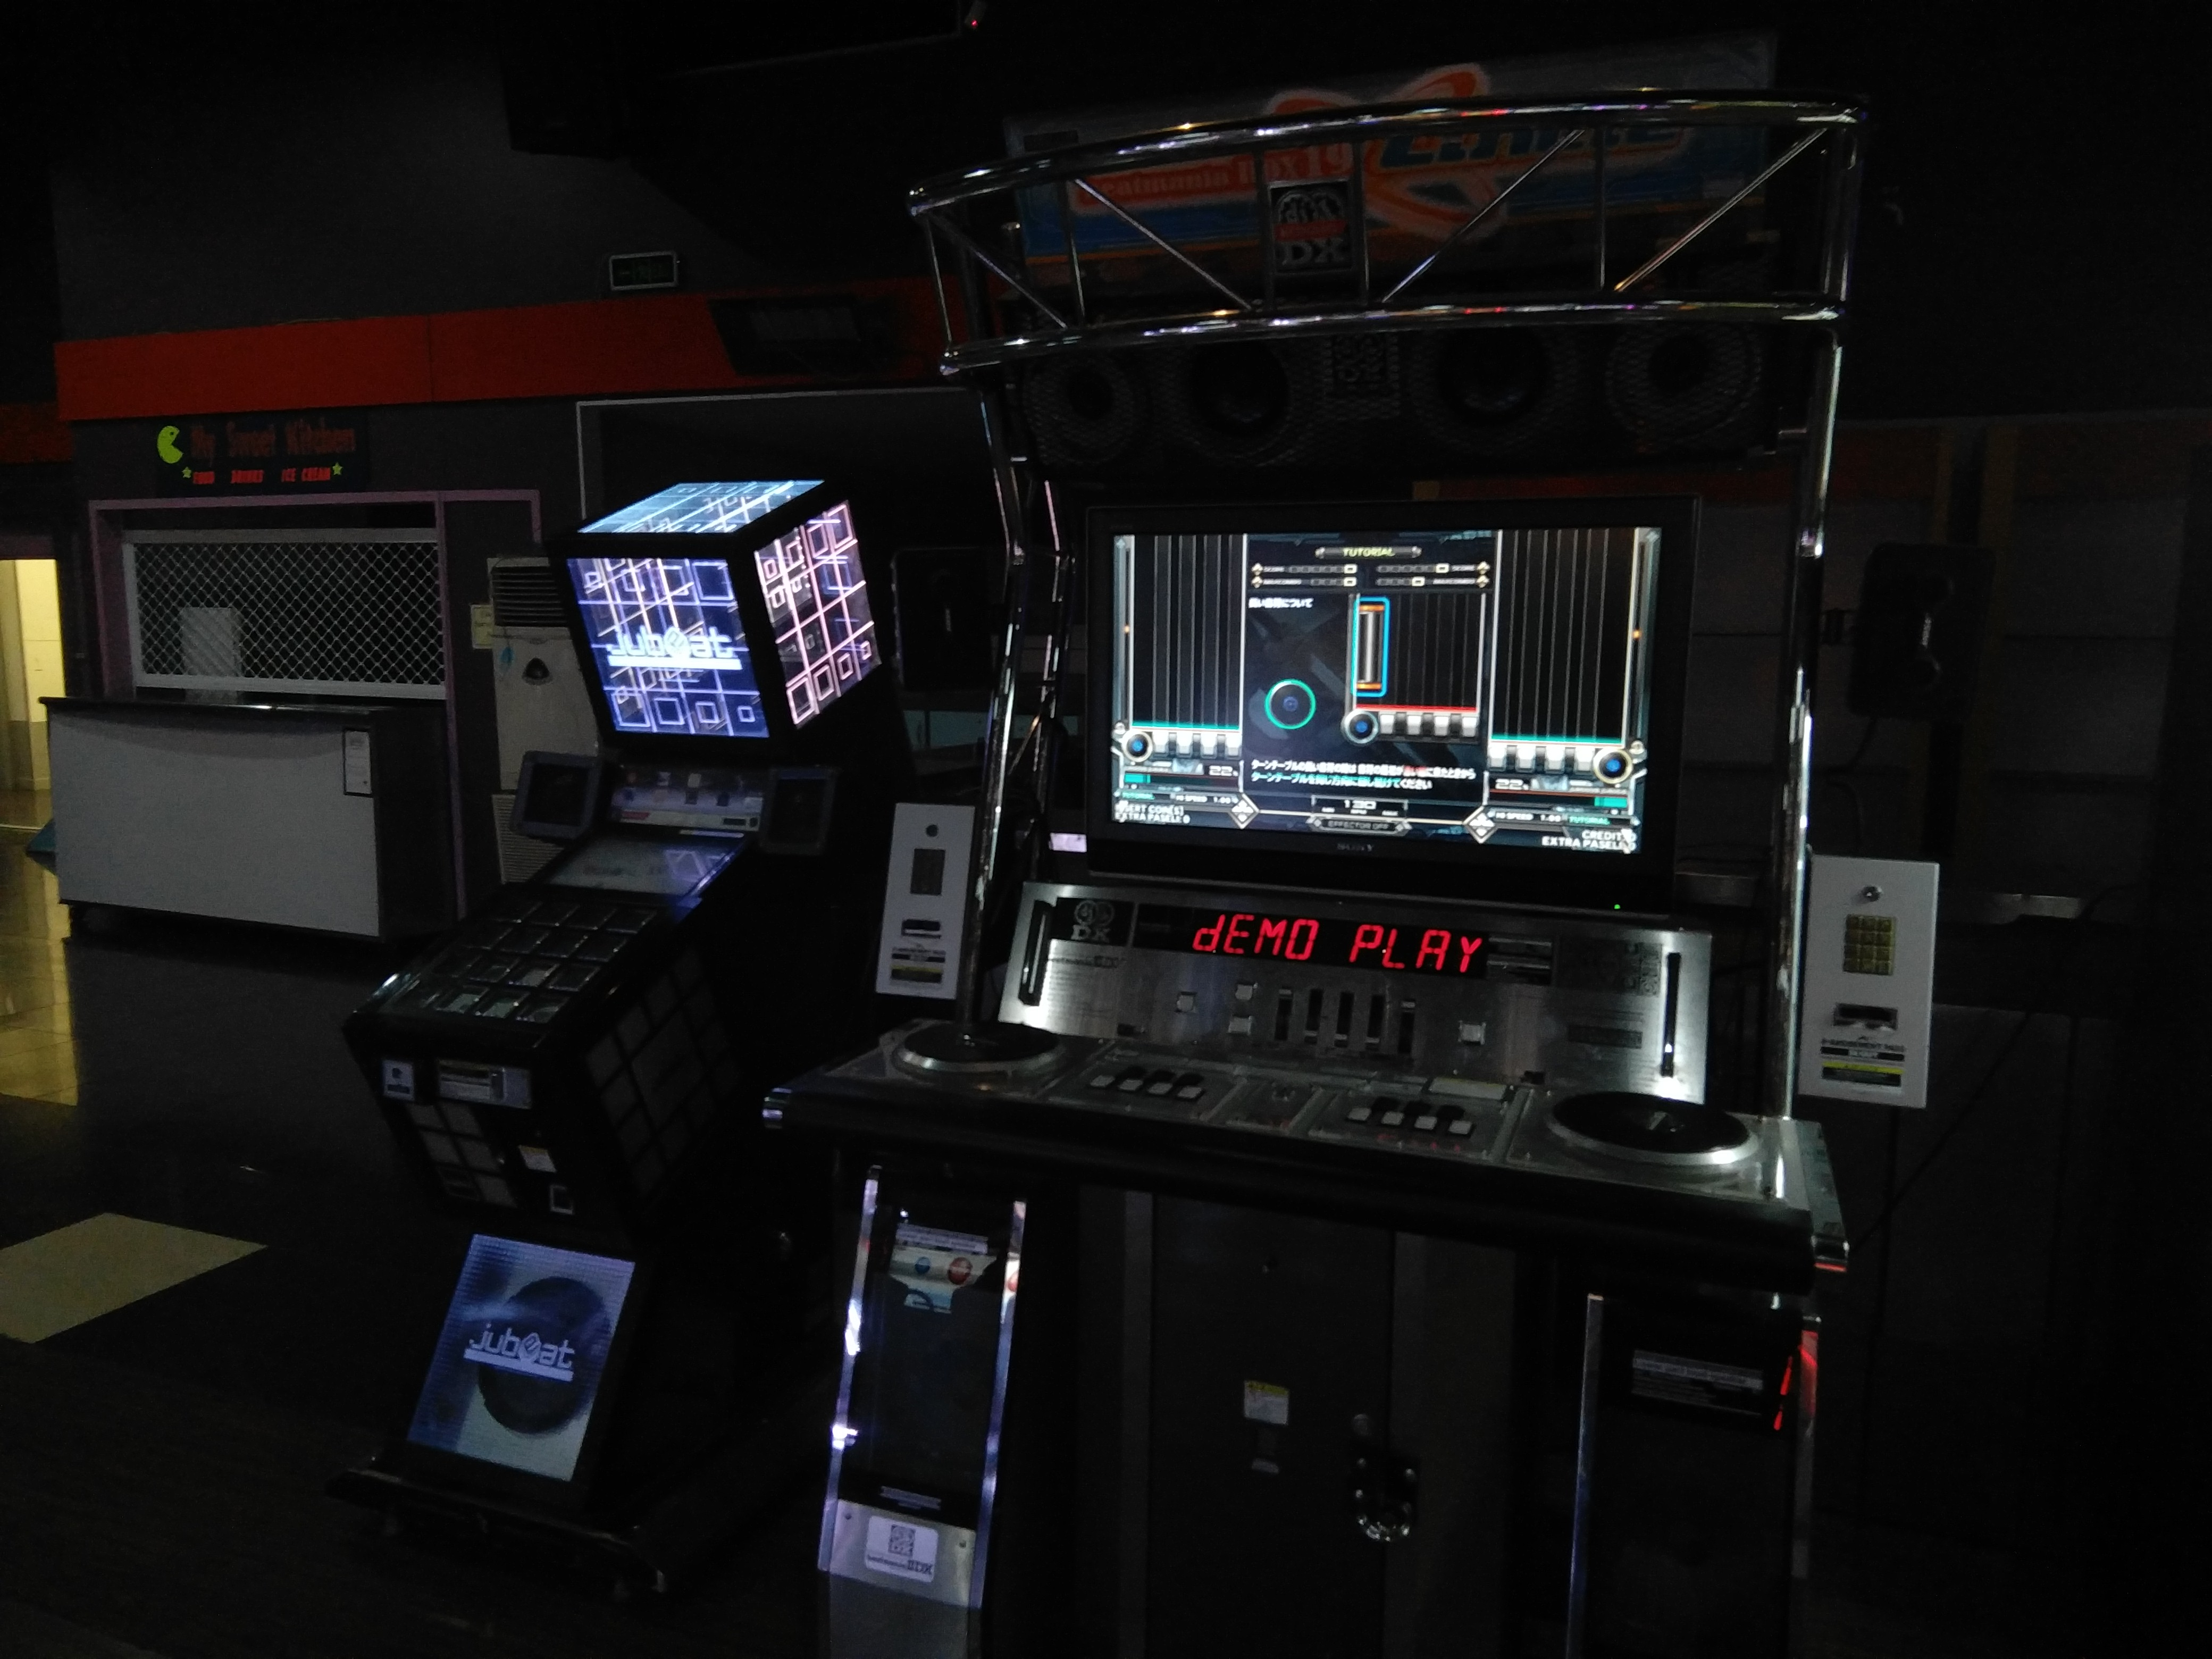 IIDX and Jubeat - Arcade Locations - Picture Gallery - ZIv